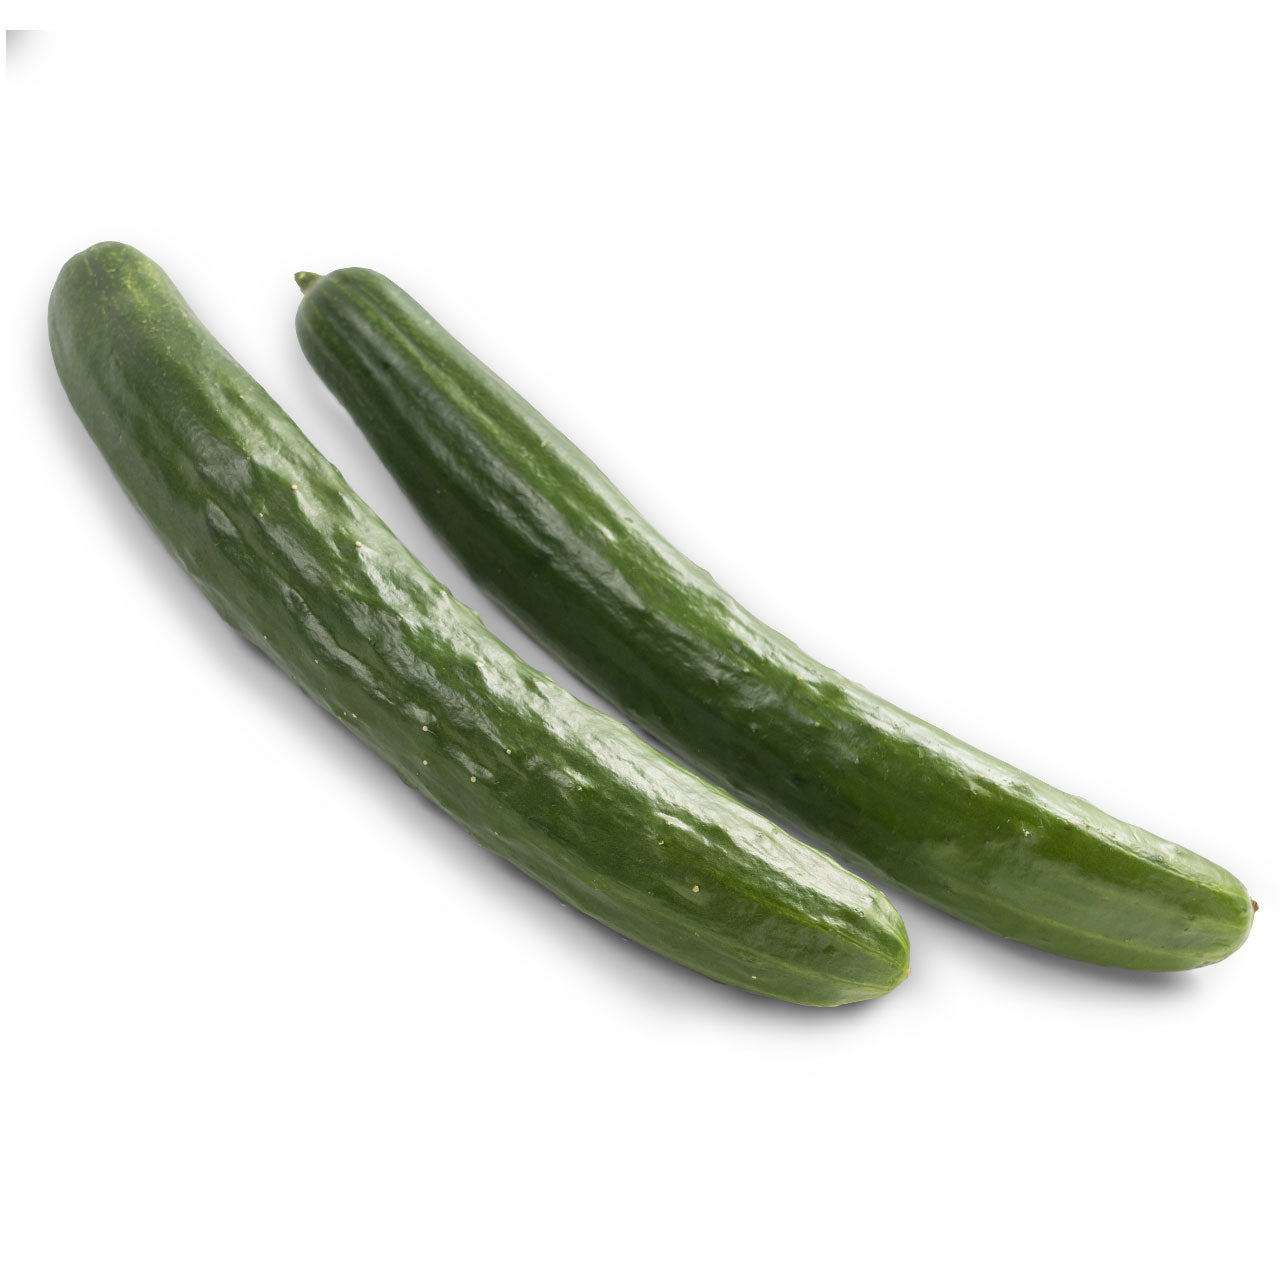 Kyuri Japanese Cucumbers 2 Pieces Japanese Grocery Delivered to NY NJ